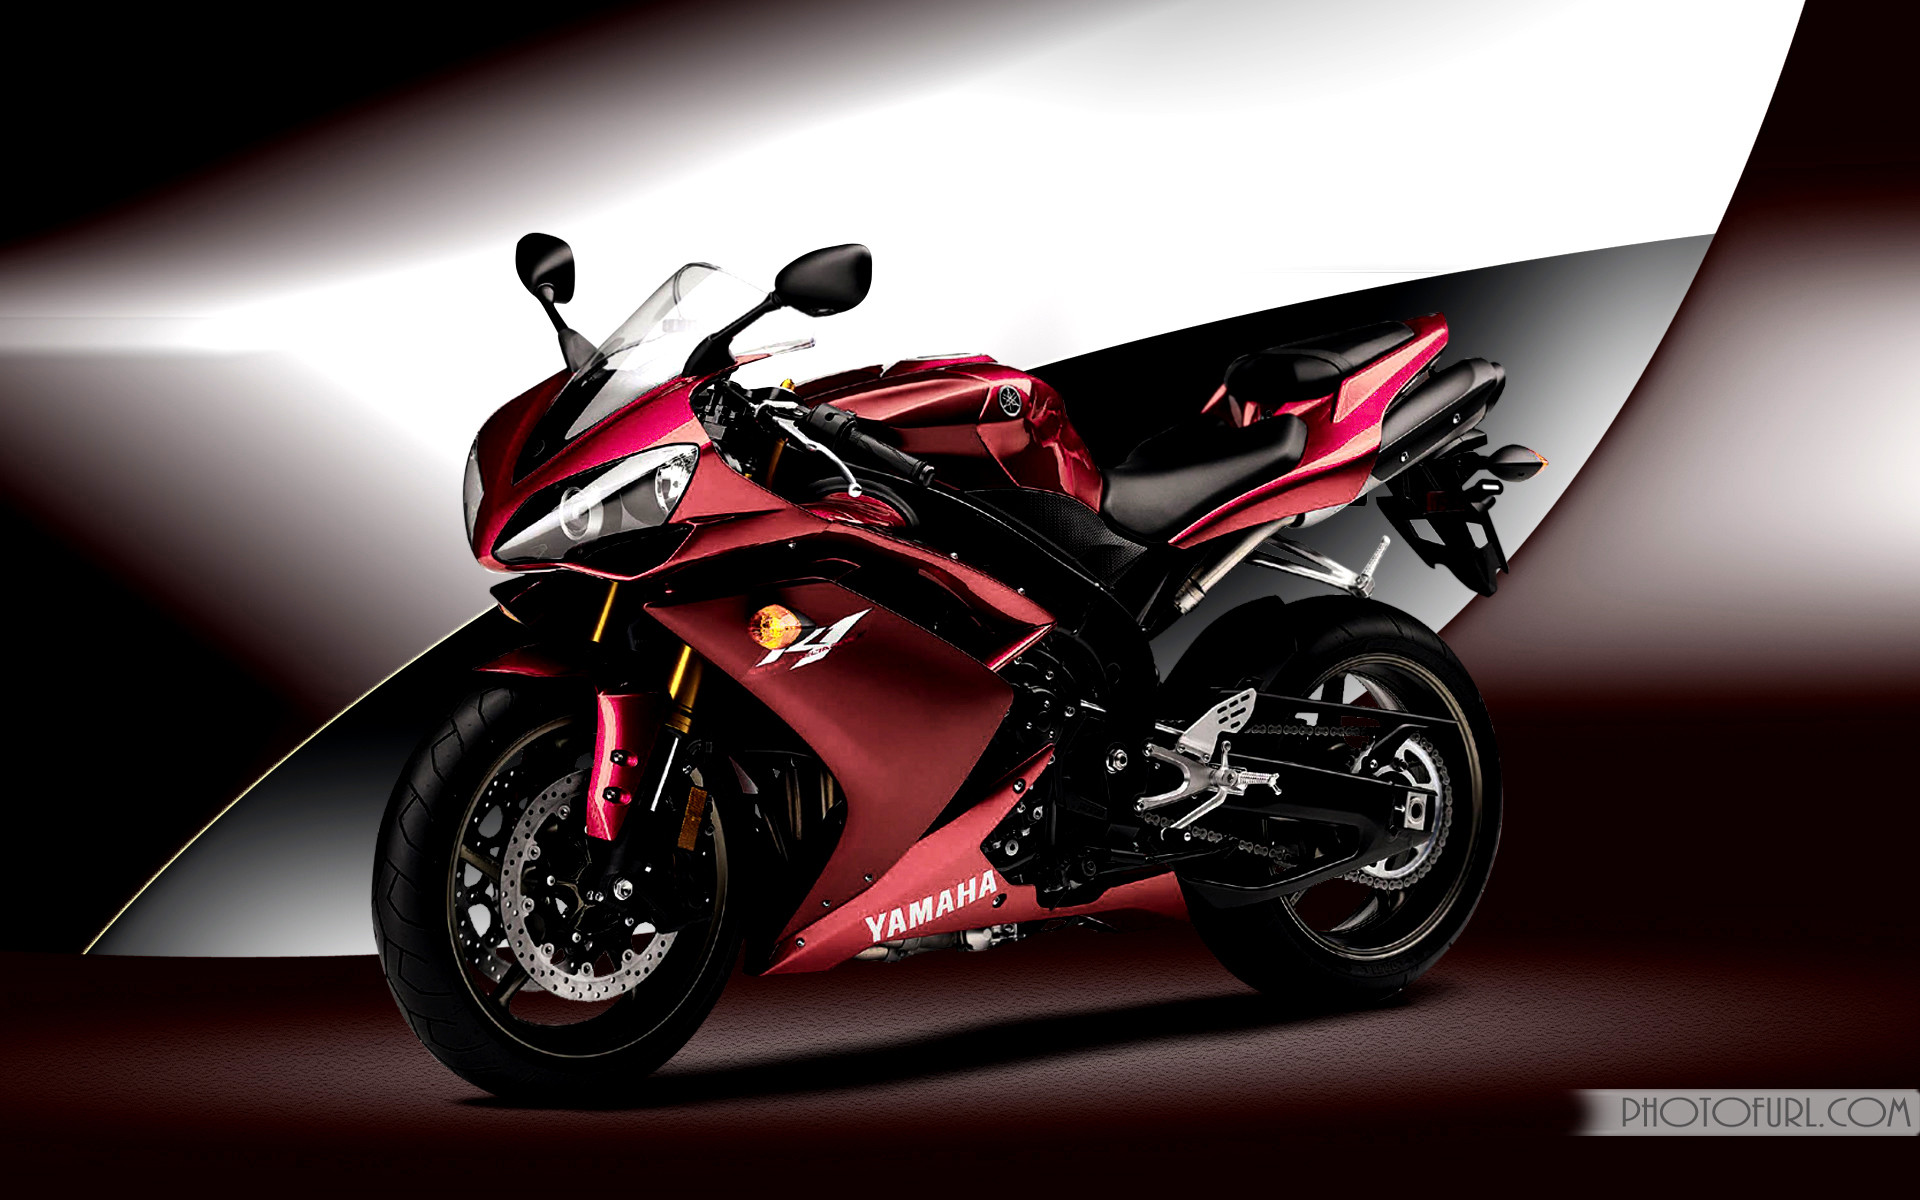 Sport Bike Black And Red Wallpaper: Yamaha R1 Wallpapers (70+ Images